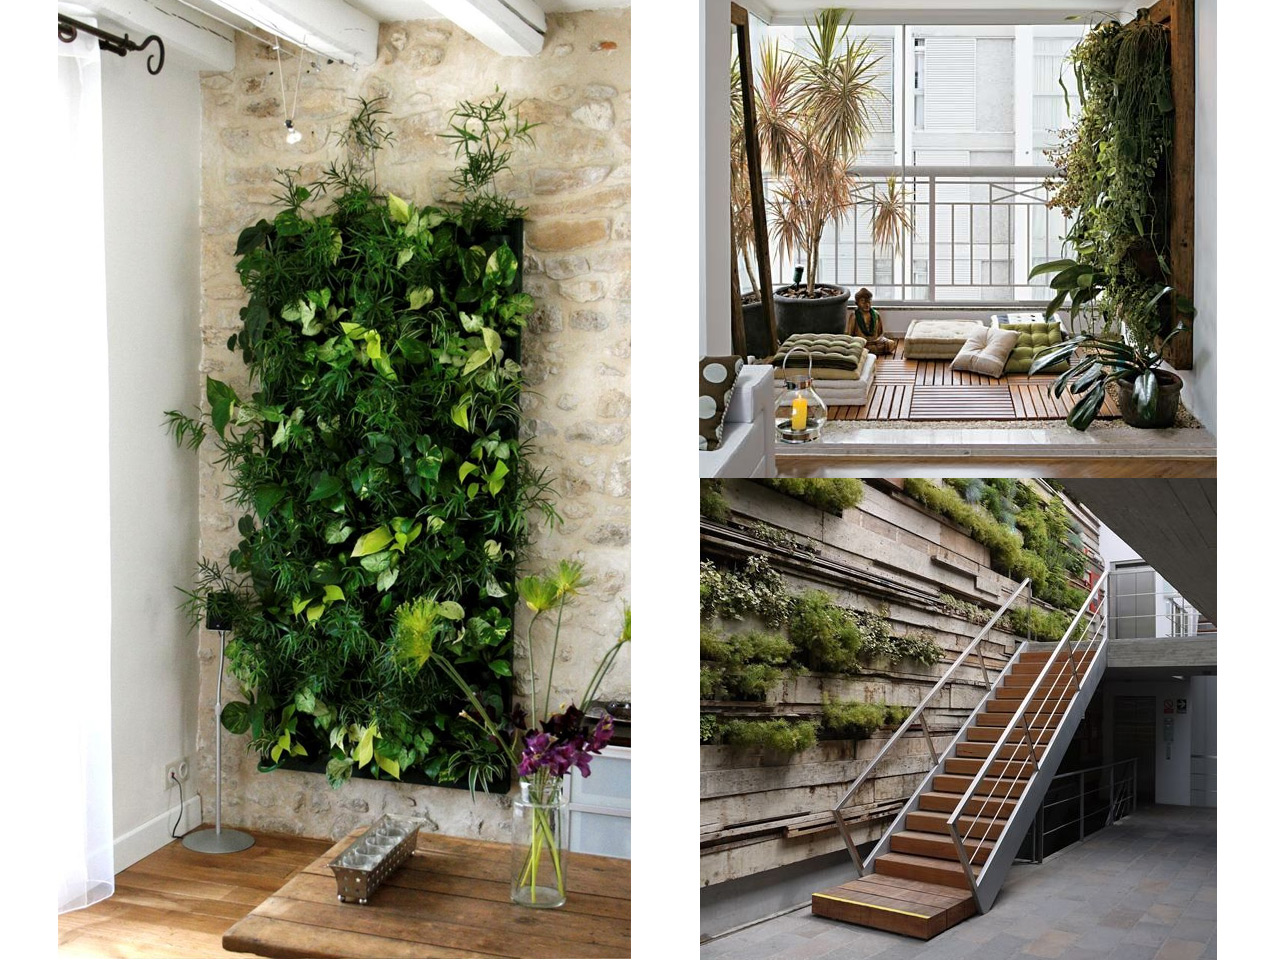 Tus 7 inspiraciones de decoraci n de terrazas interiores for Jardin artificial interior